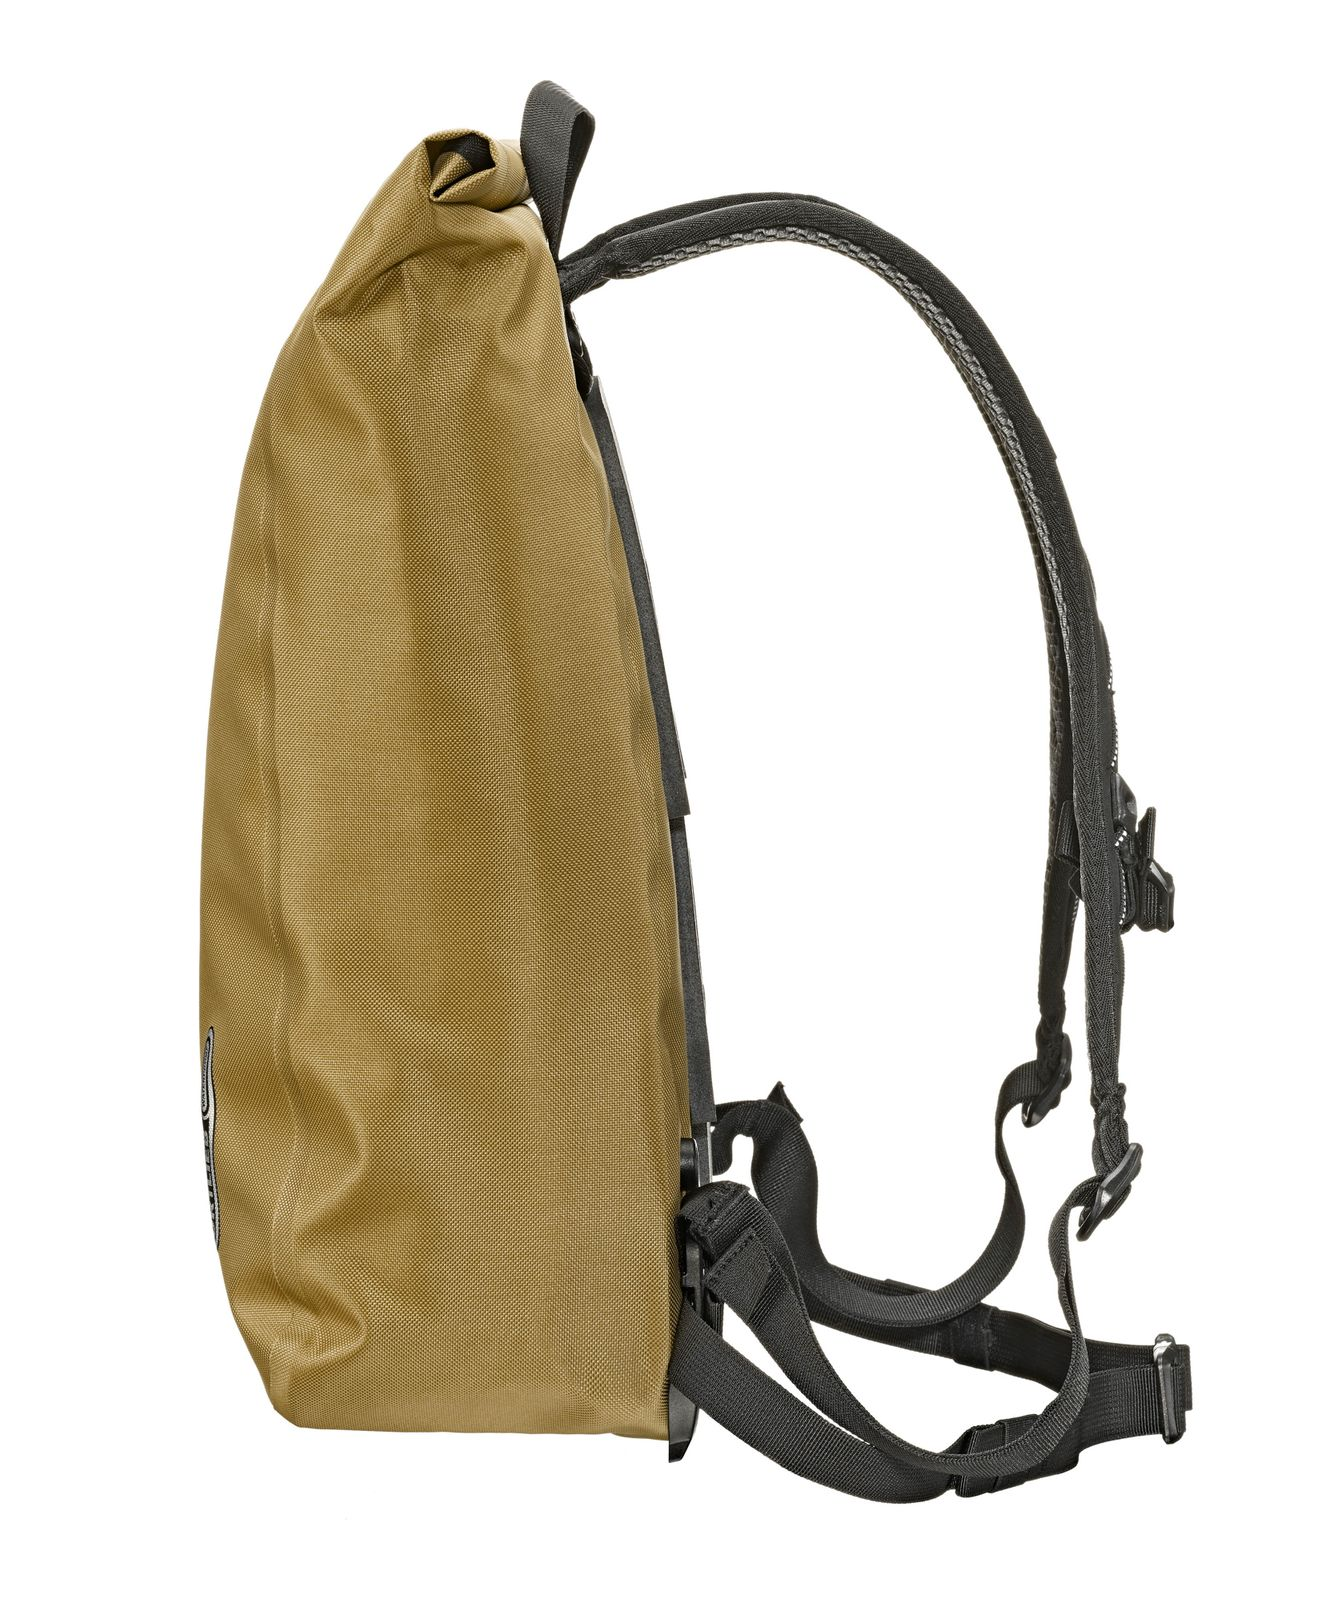 ORTLIEB Velocity PS City Backpack 17L Mustard